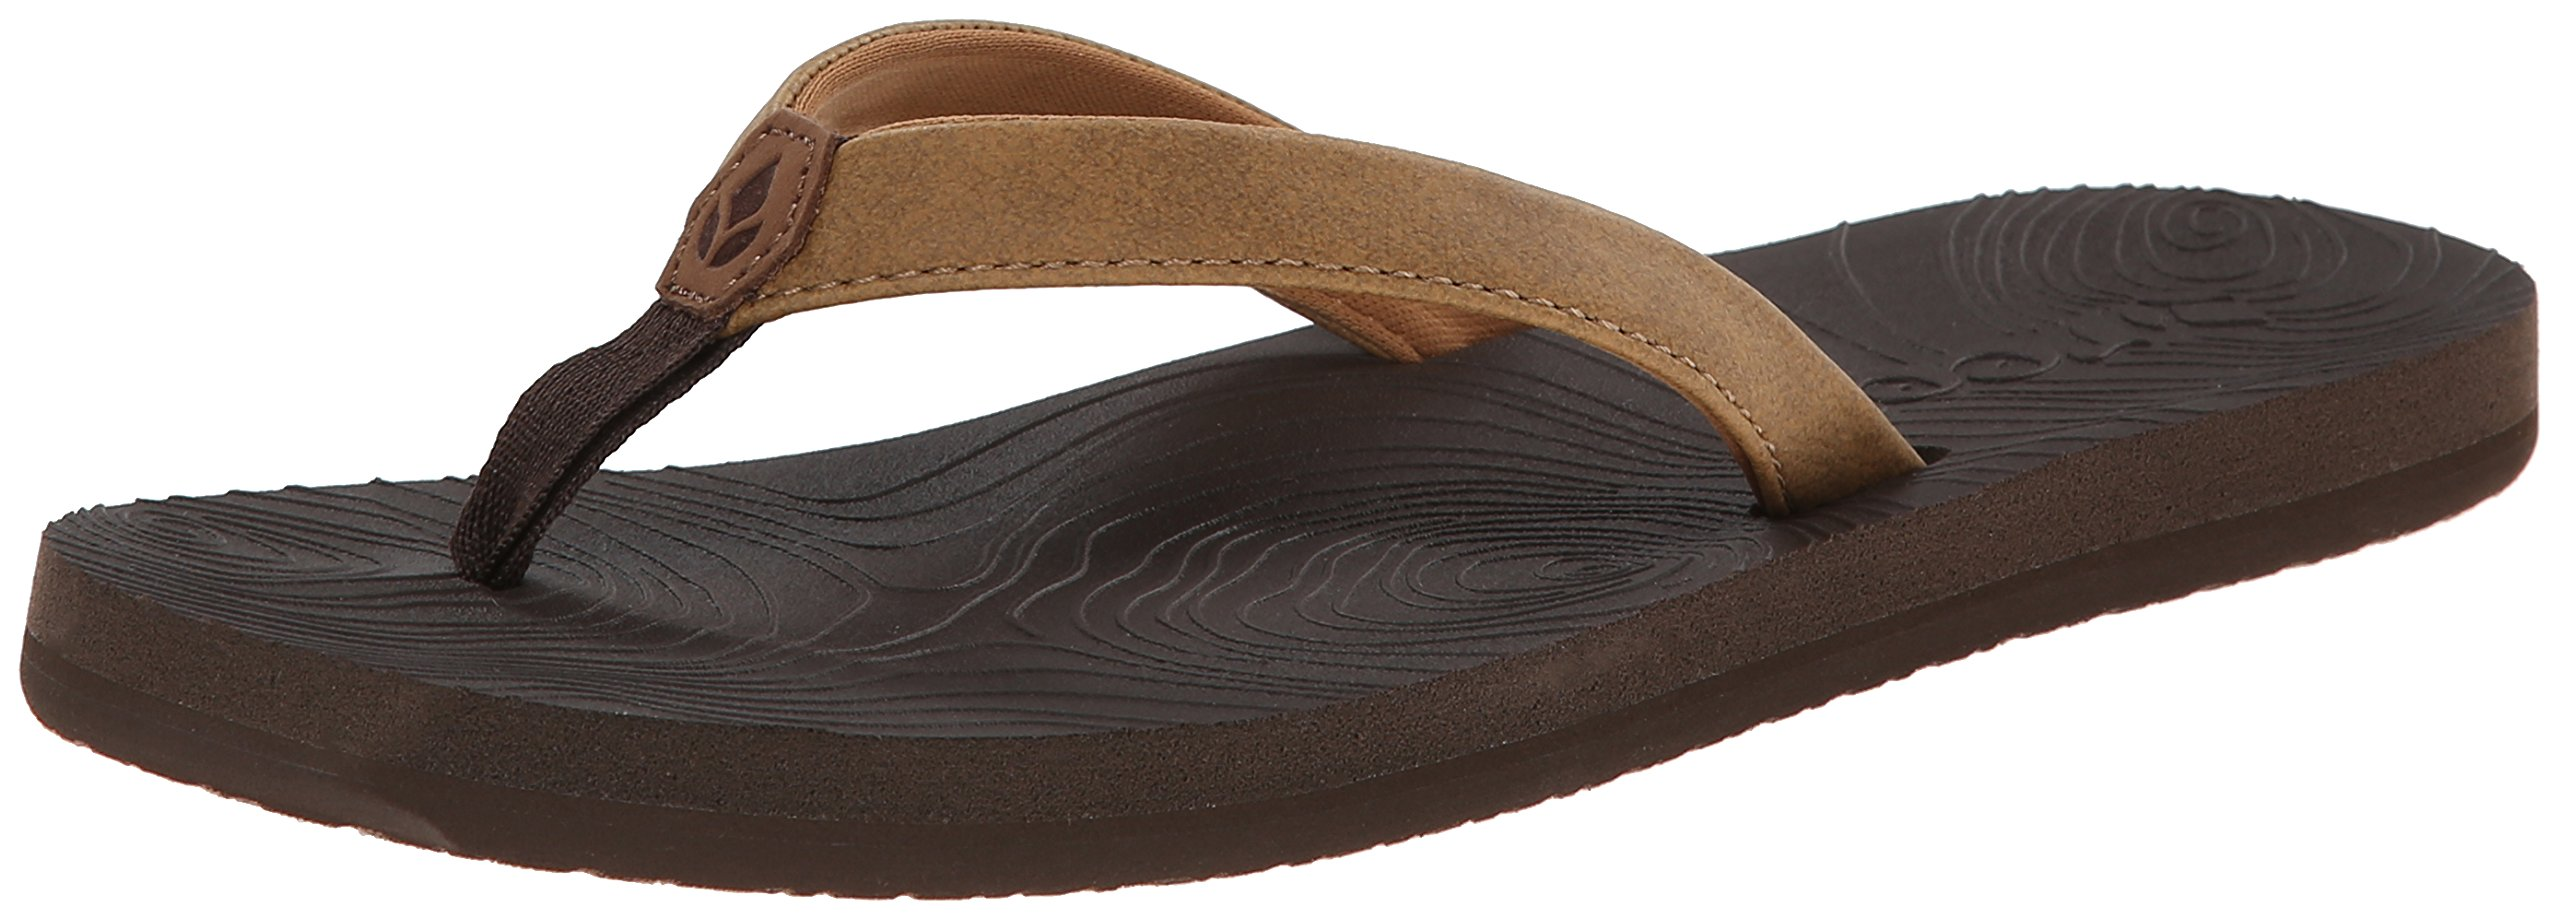 Reef Women's Zen Love Sandal,Brown Tobacco,8 M US